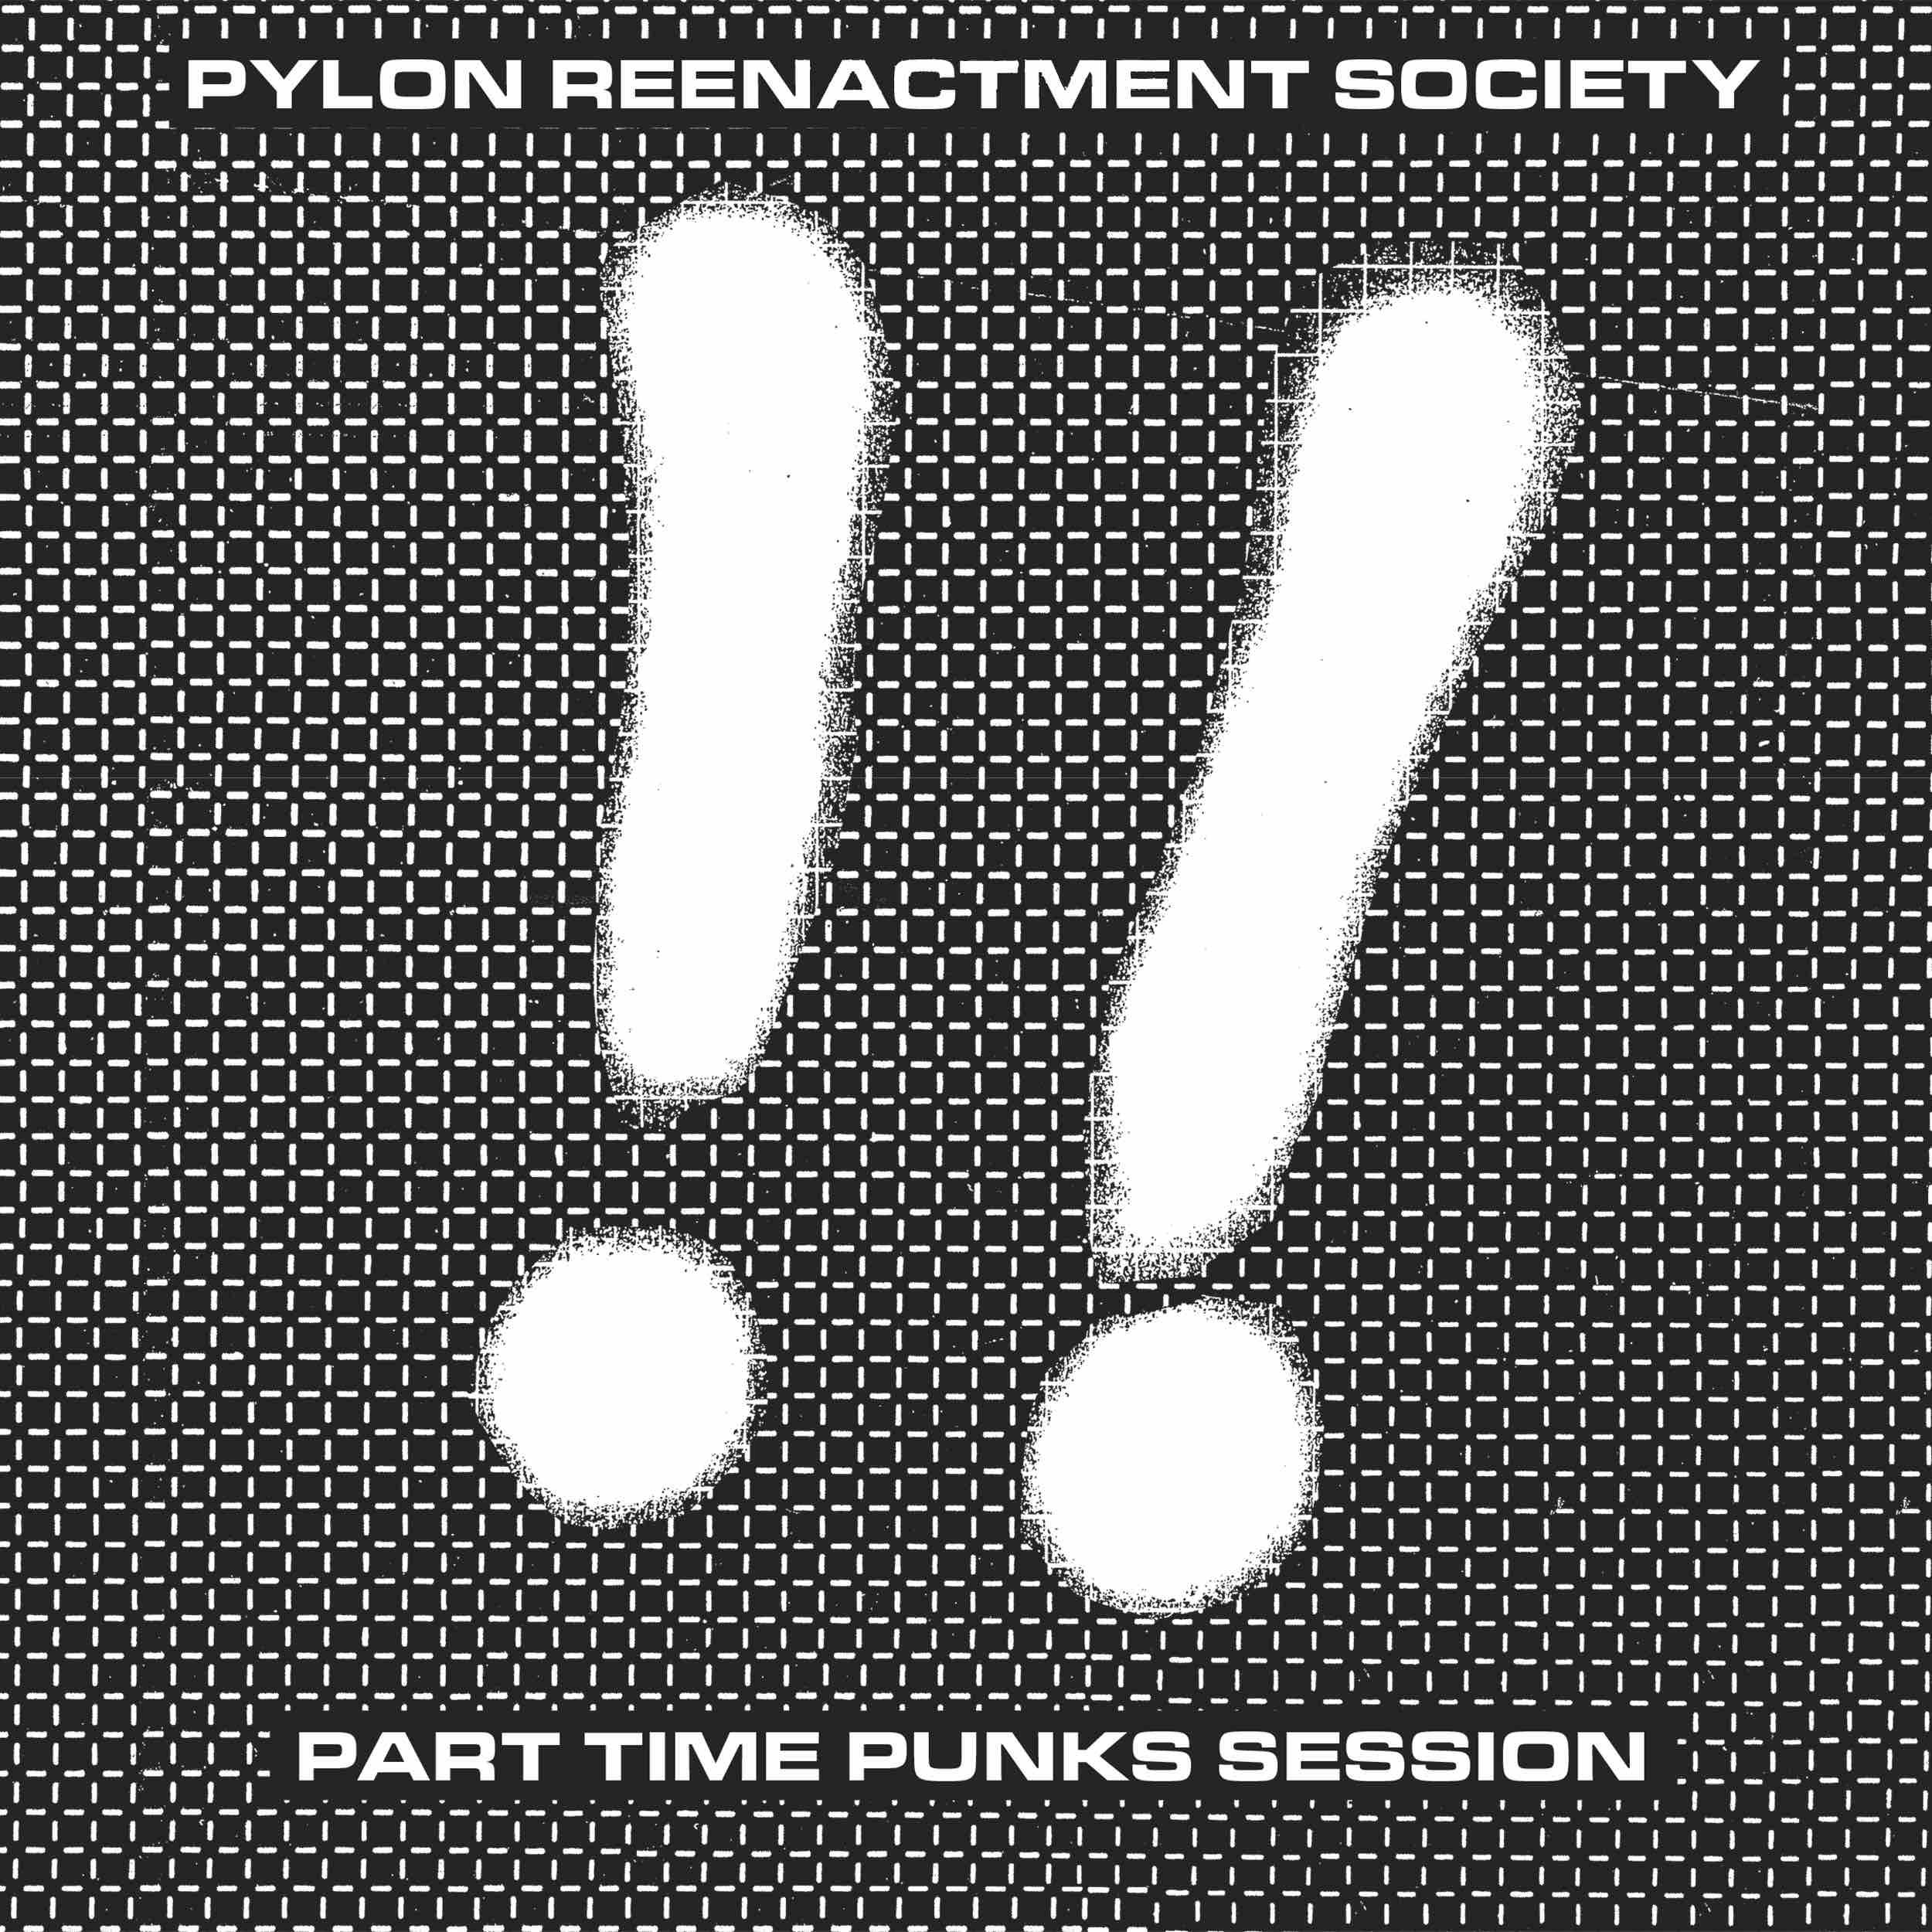 Subversive And Angular: Pylon Reenactment Society's Part Time Punks Session